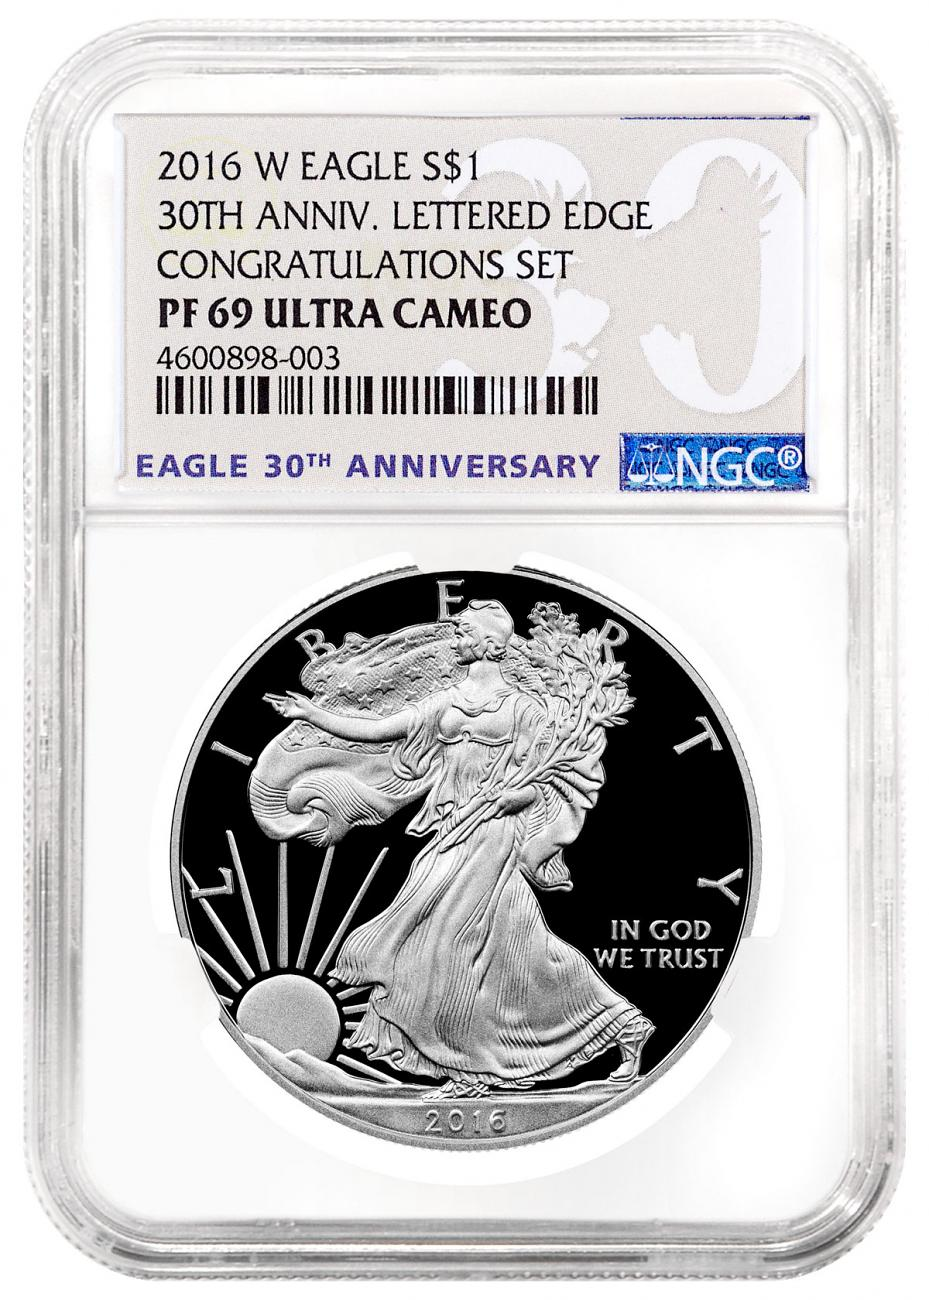 2016 W Proof American Silver Eagle Congratulations Set Ngc